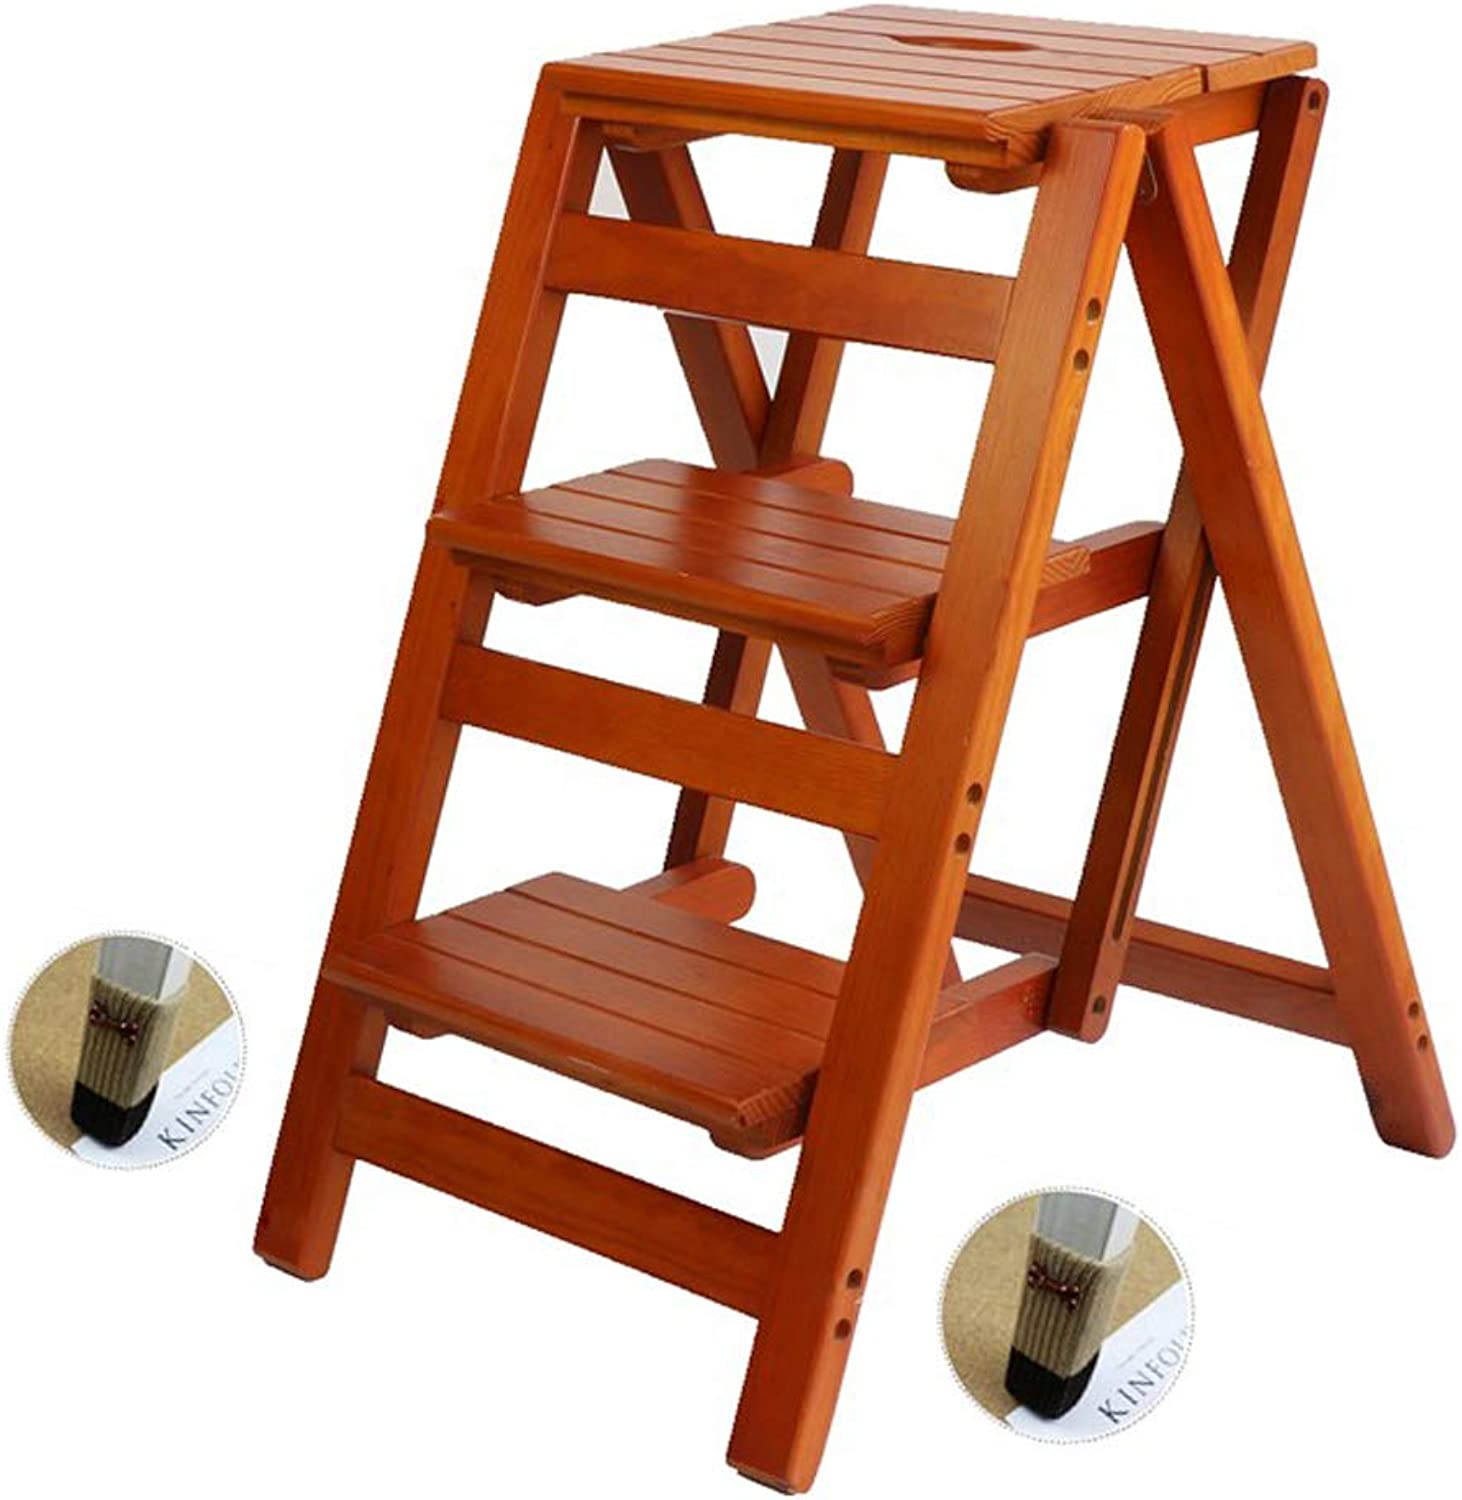 Solid Wood Ladder Stool Folding Home Multi-Function Ladder Indoor Ladder Pedal 3 Step Stool for Home Kitchen Office Garden Climbing Tools